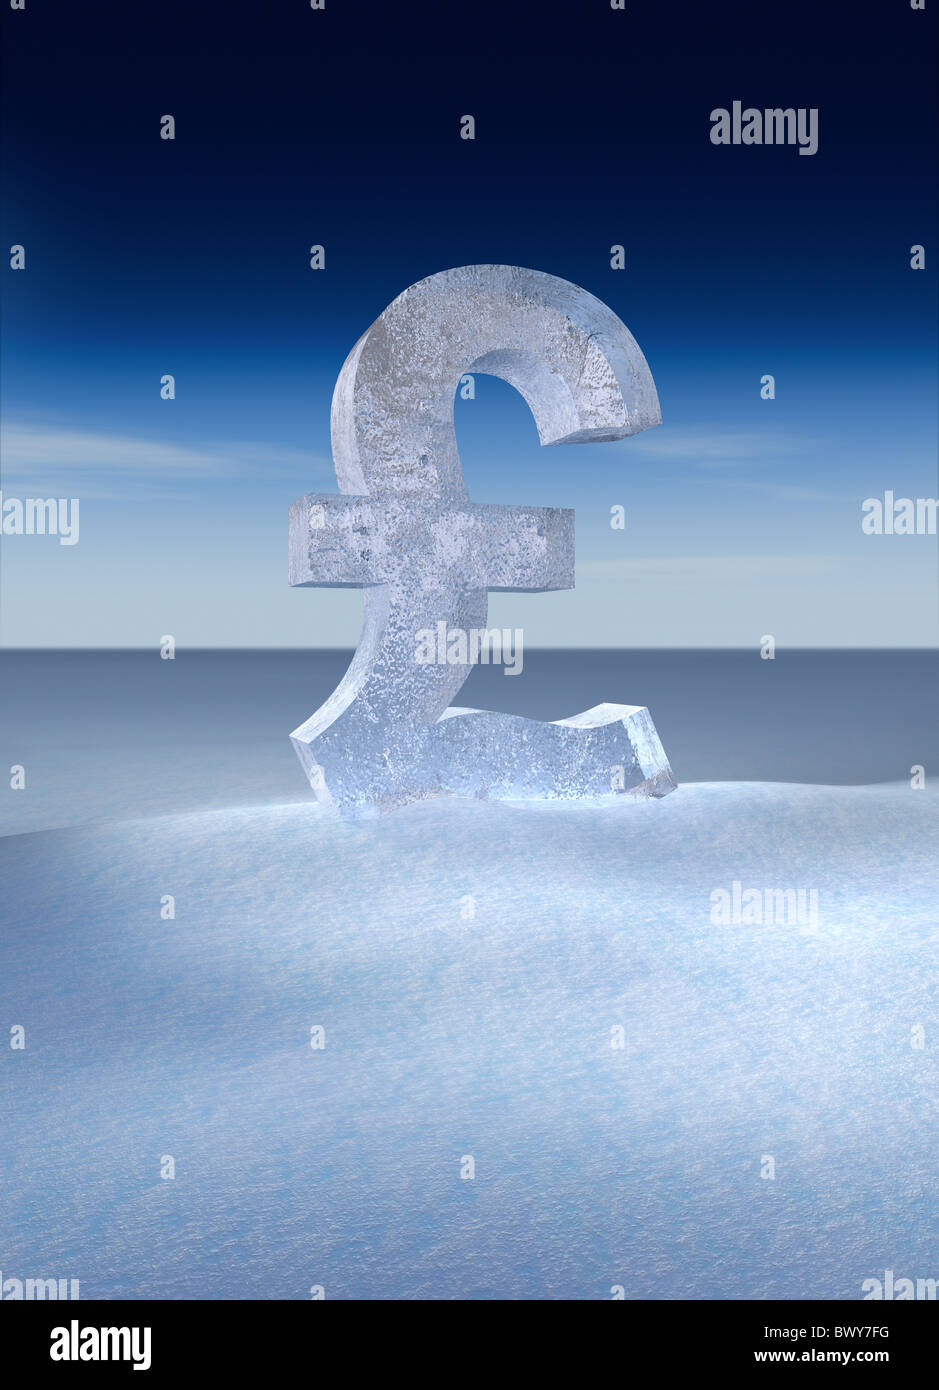 British pound currency symbol made out of block of ice in winter british pound currency symbol made out of block of ice in winter landscape buycottarizona Choice Image